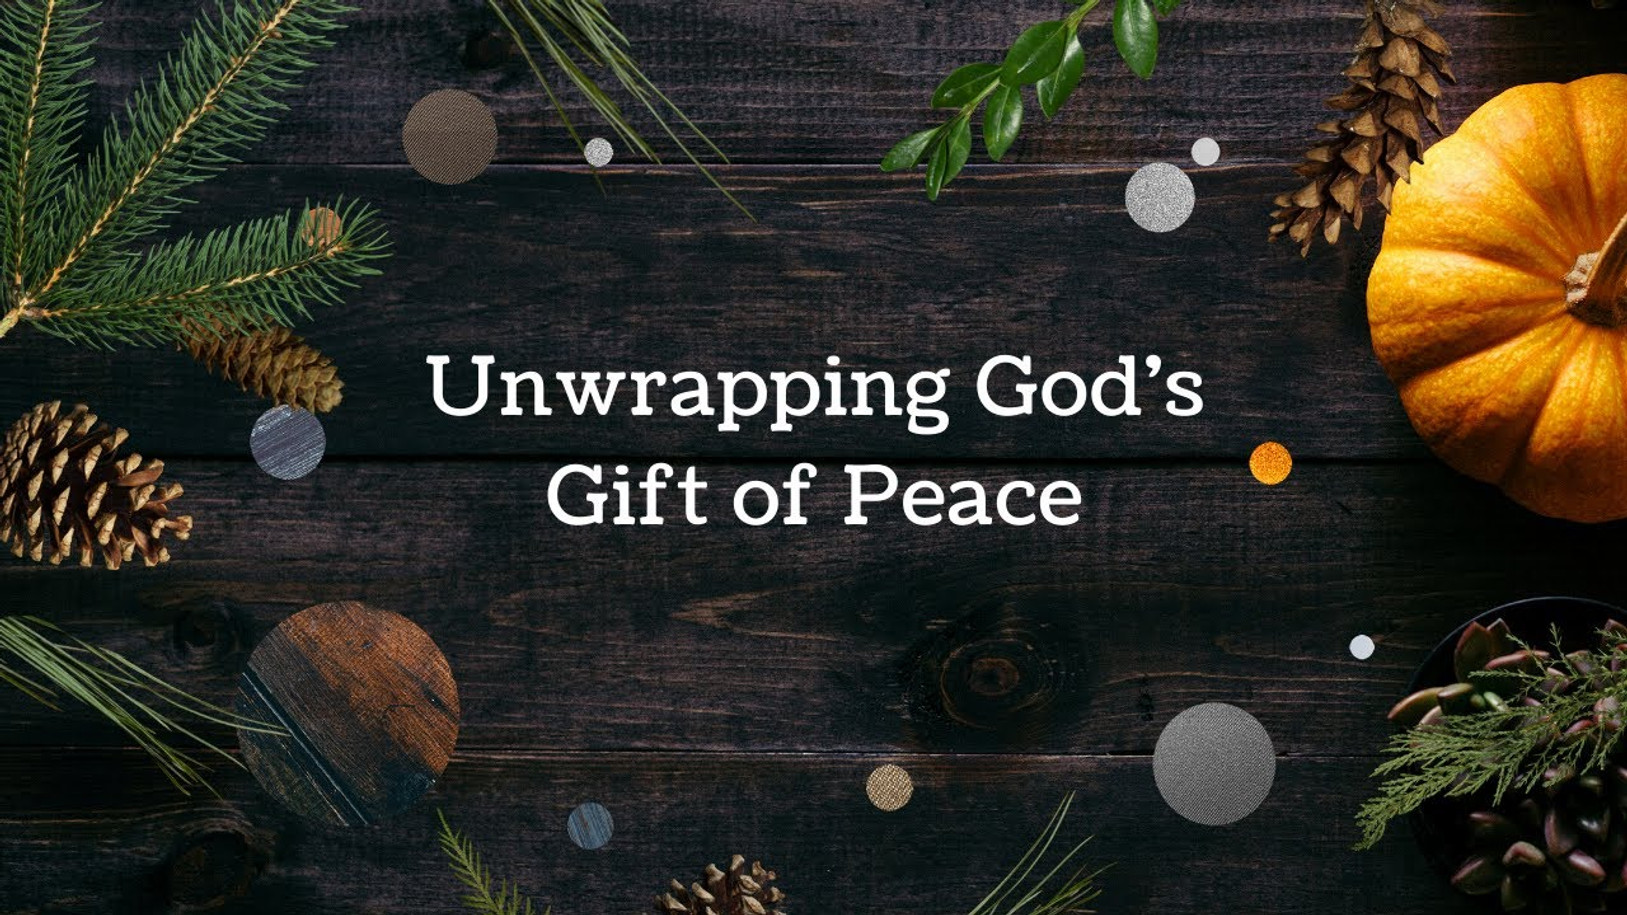 Unwrapping God's Gift of Peace